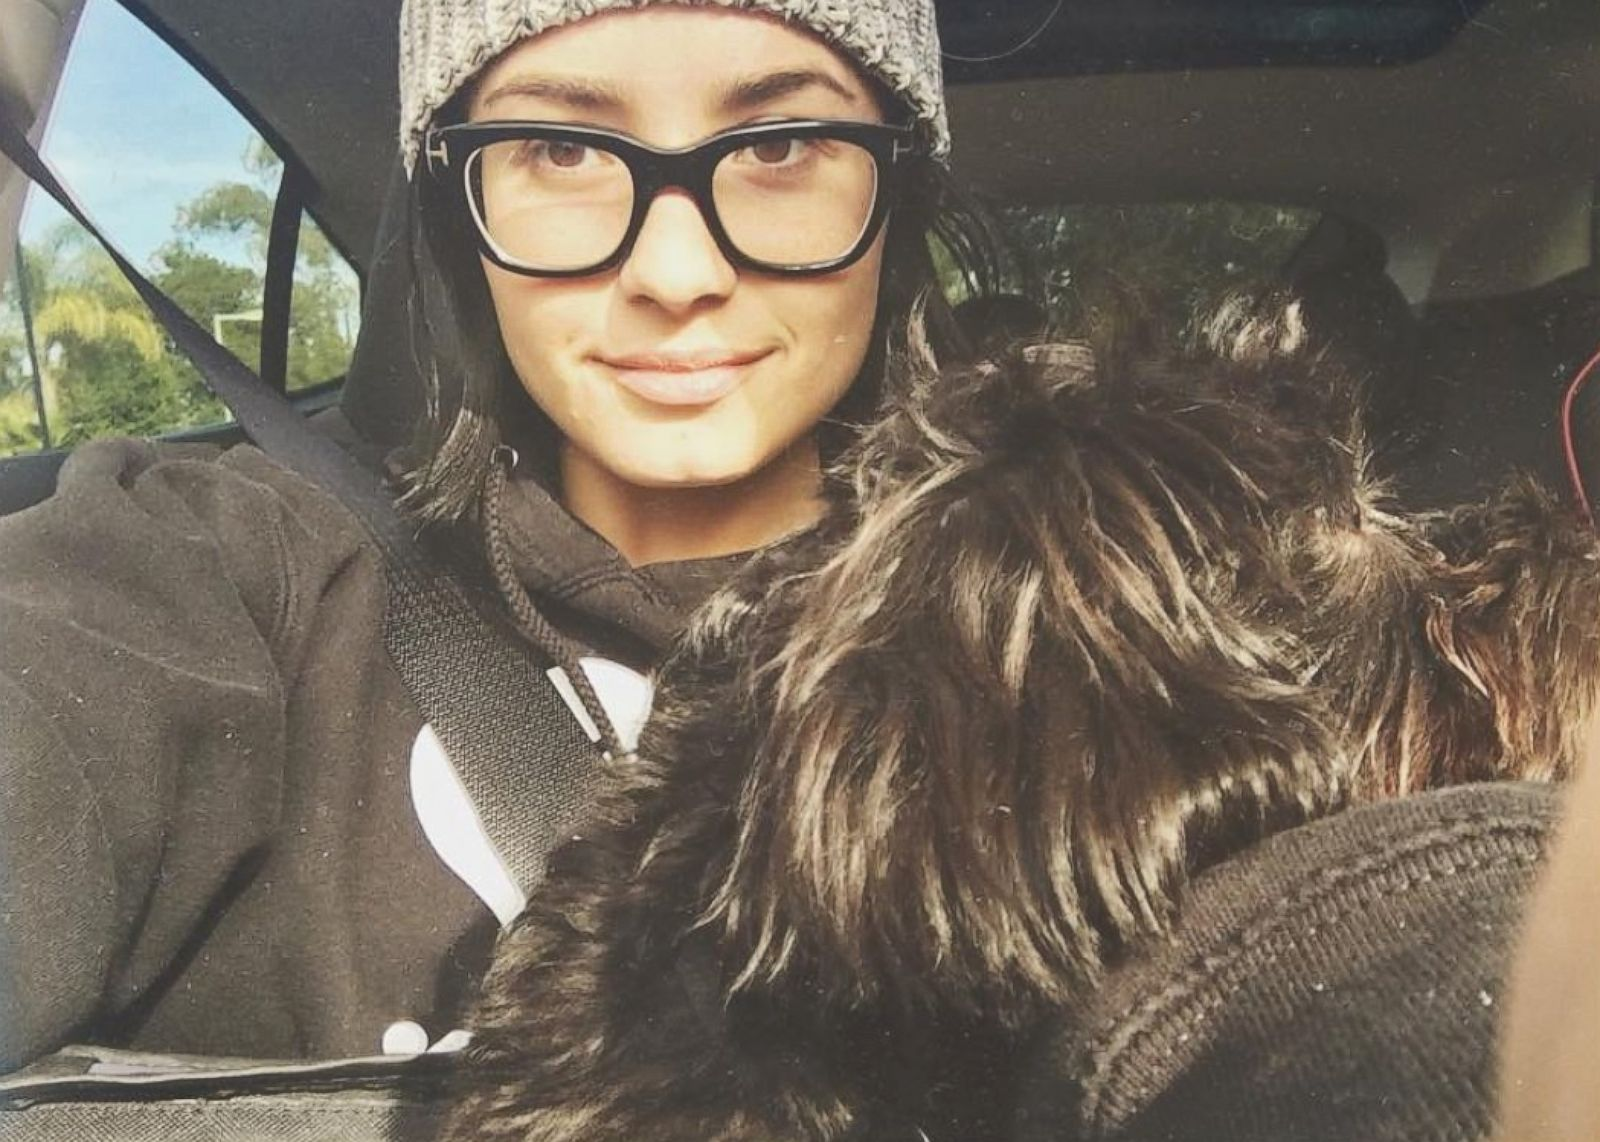 Demi Lovato Goes Makeup Free Picture | Celebrities Without ...